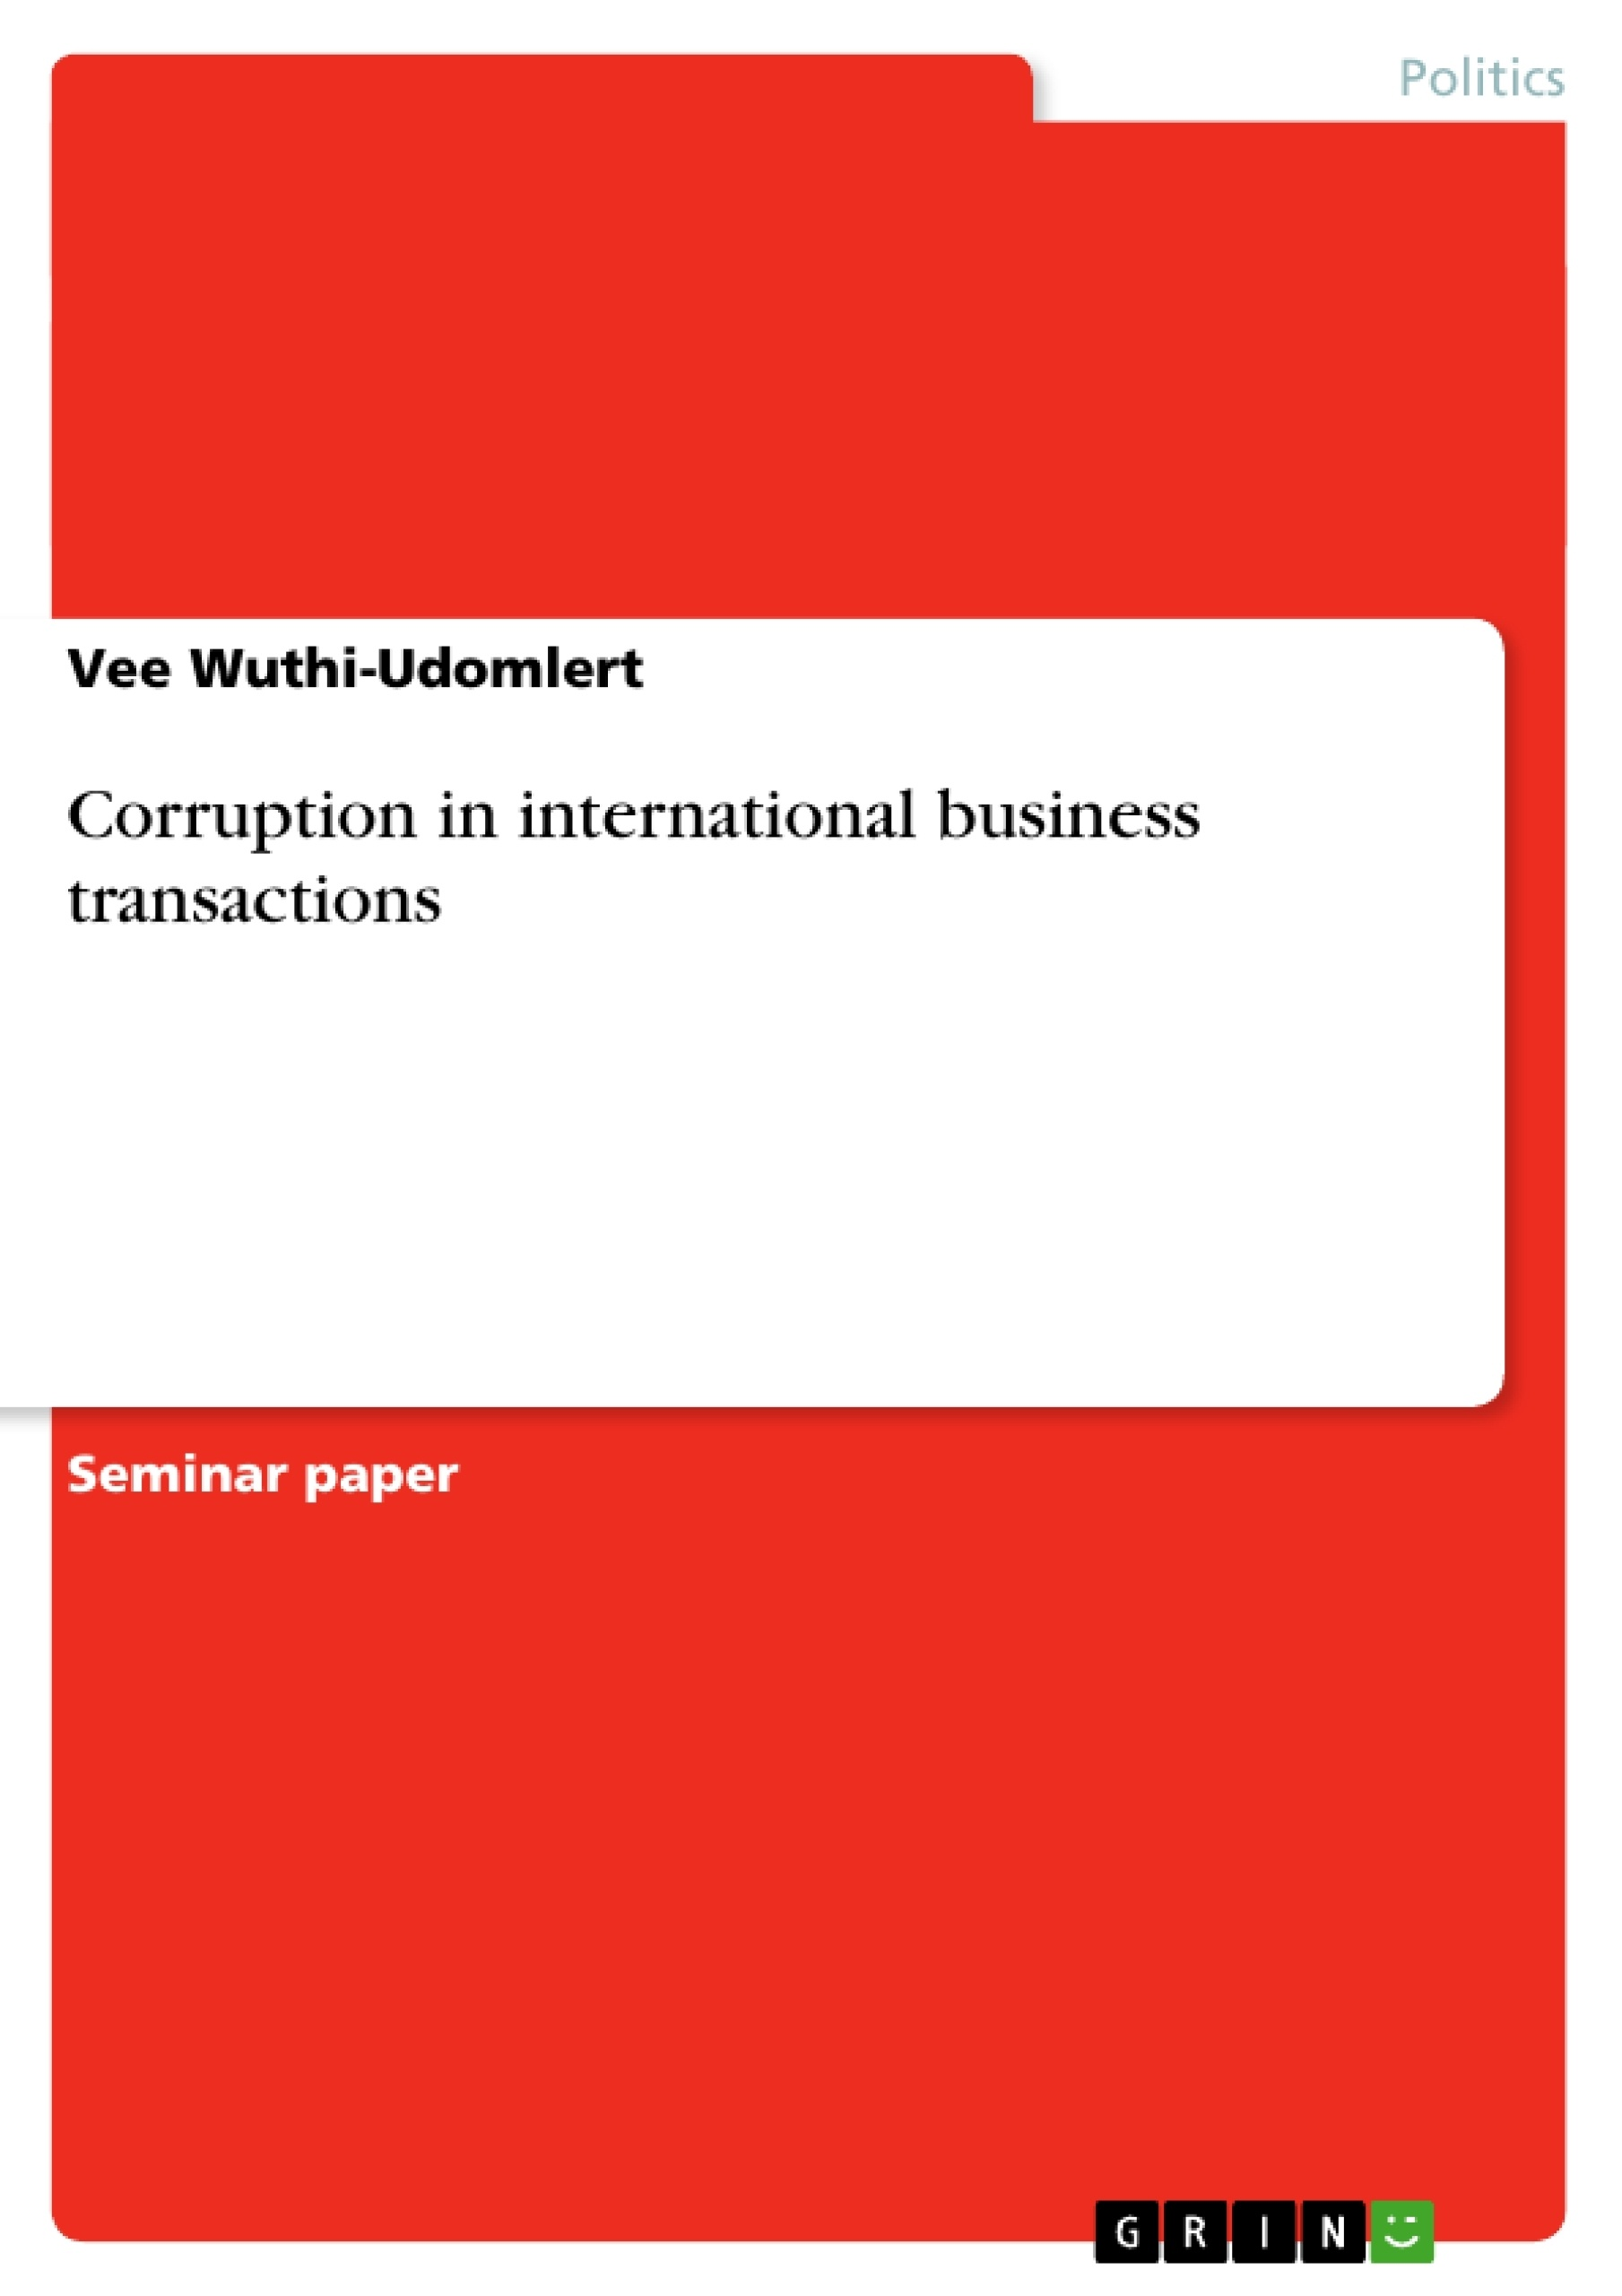 international business paper corruption in international business  corruption in international business transactions publish your upload your own papers earn money and win an international business research paper topics